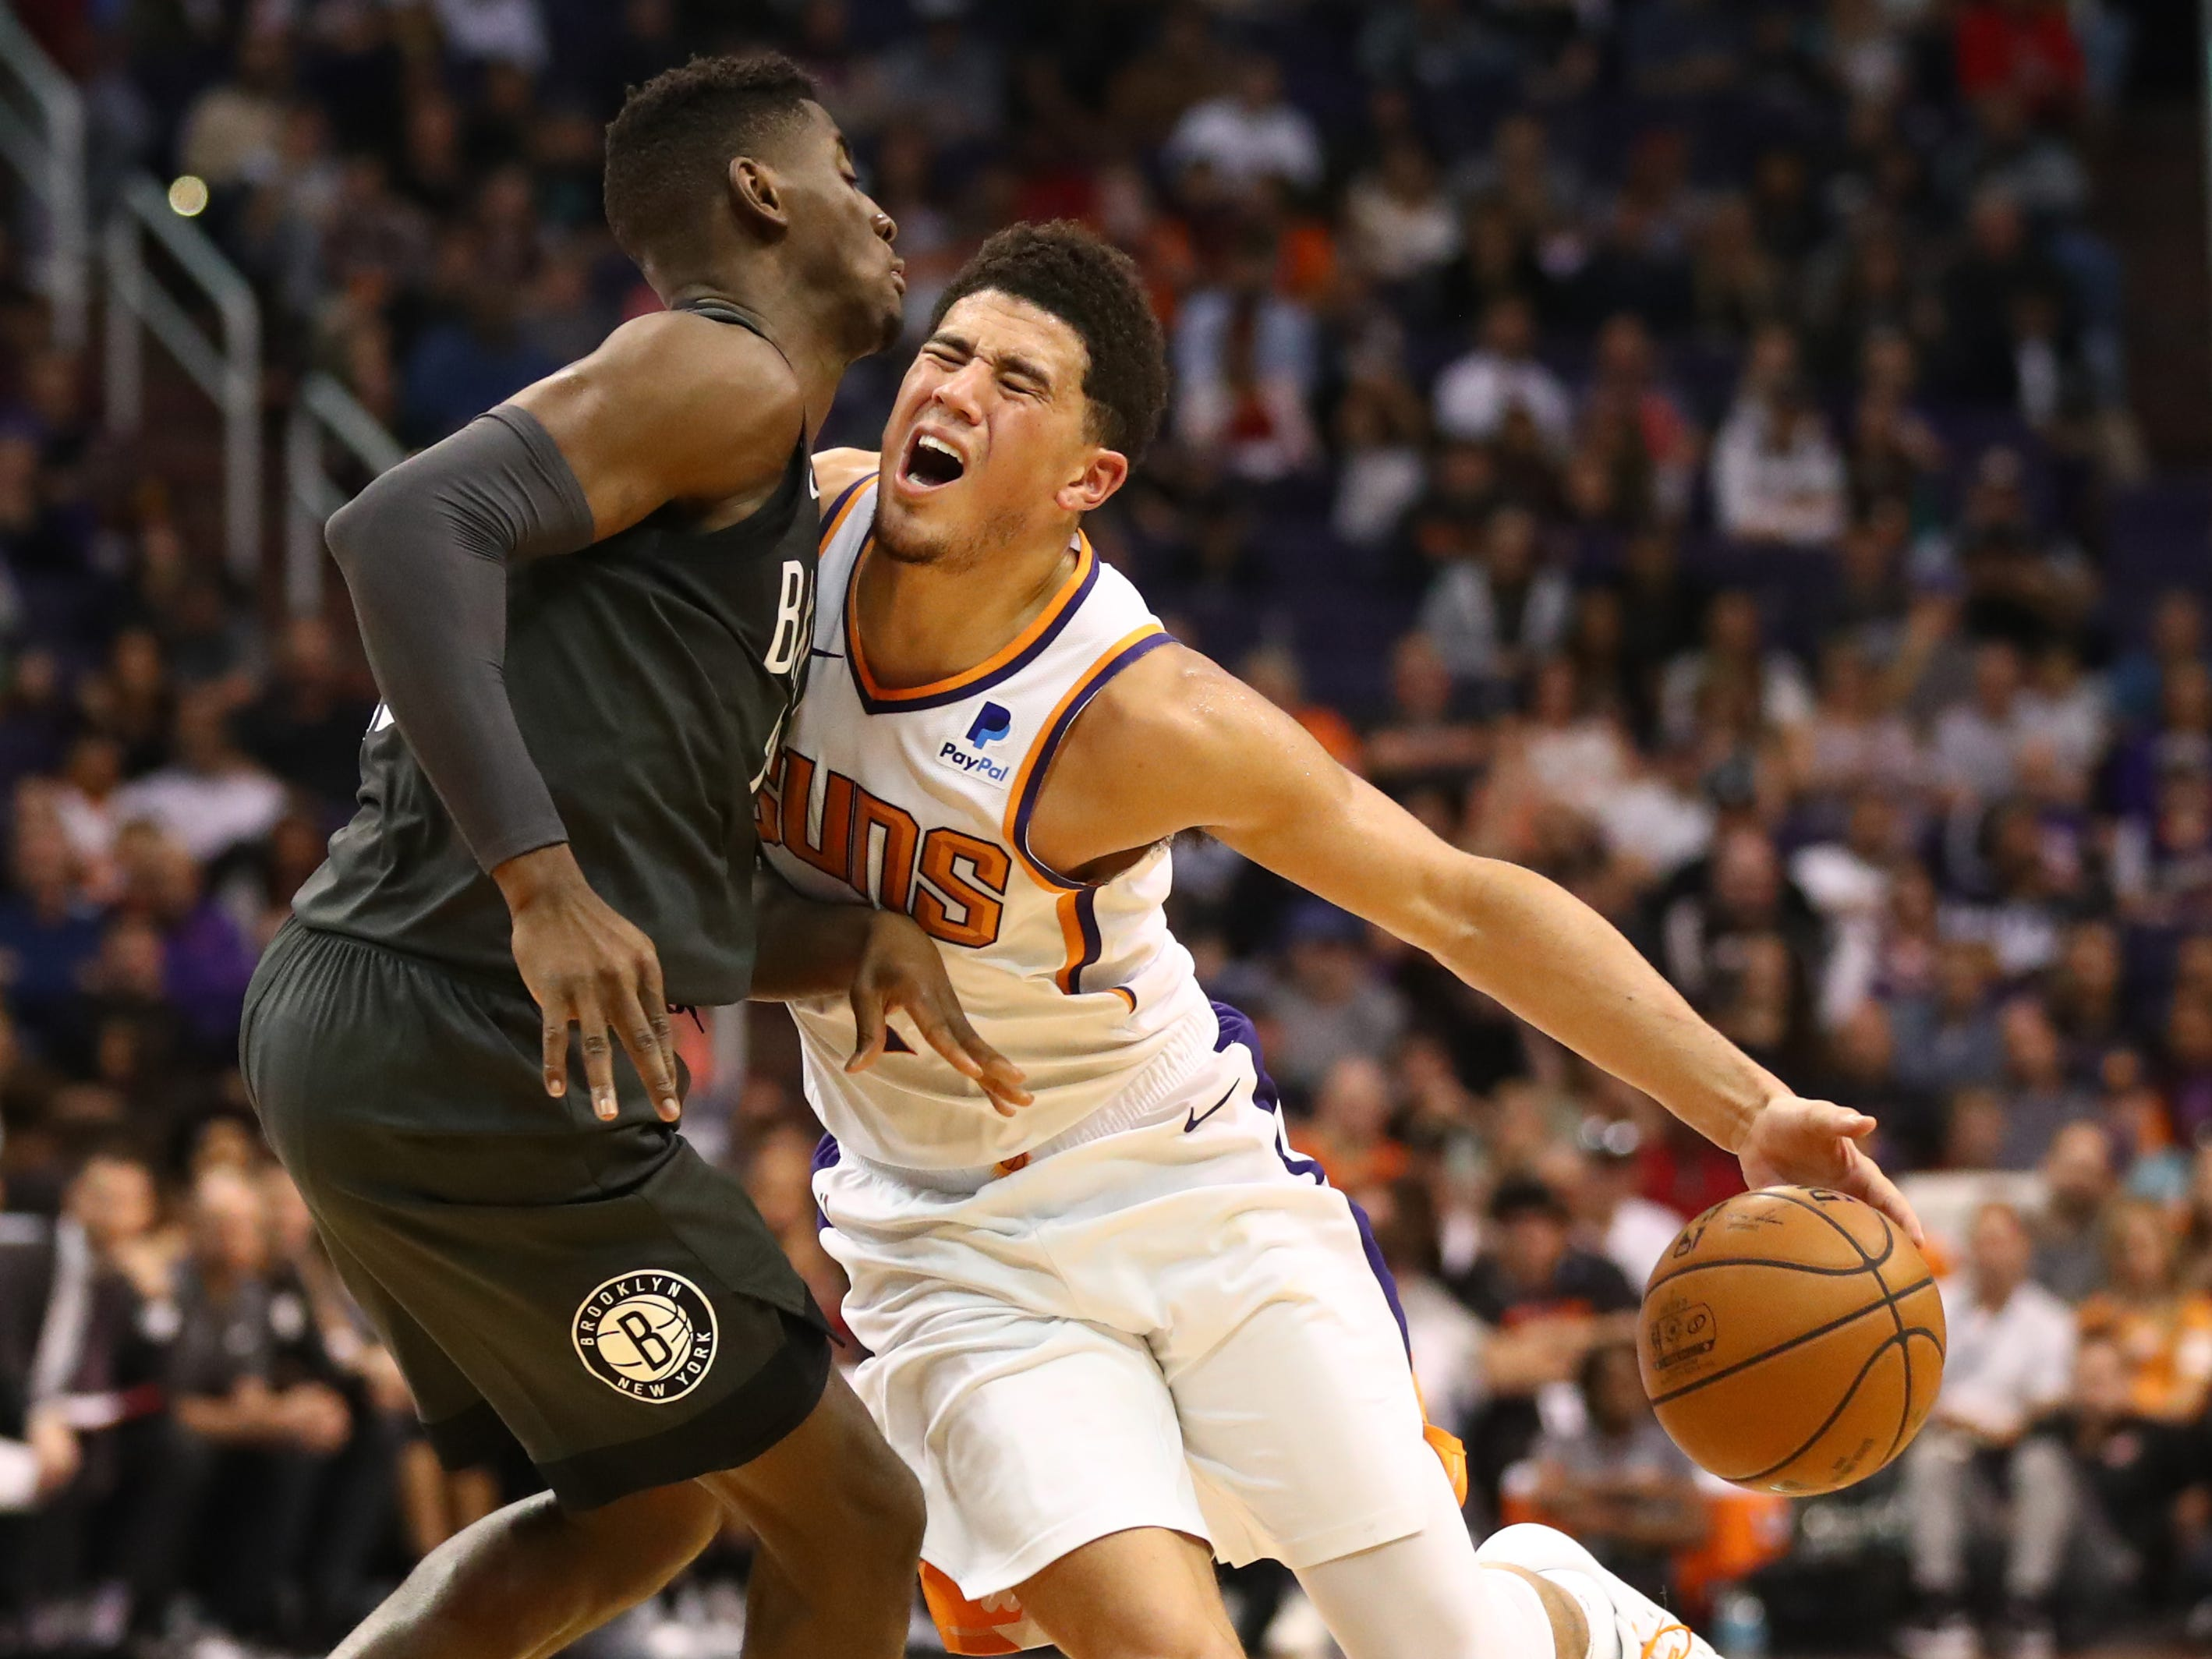 Nov. 6: Suns guard Devin Booker (1) collides with Nets defender Caris LeVert (22) during the second half in Phoenix.